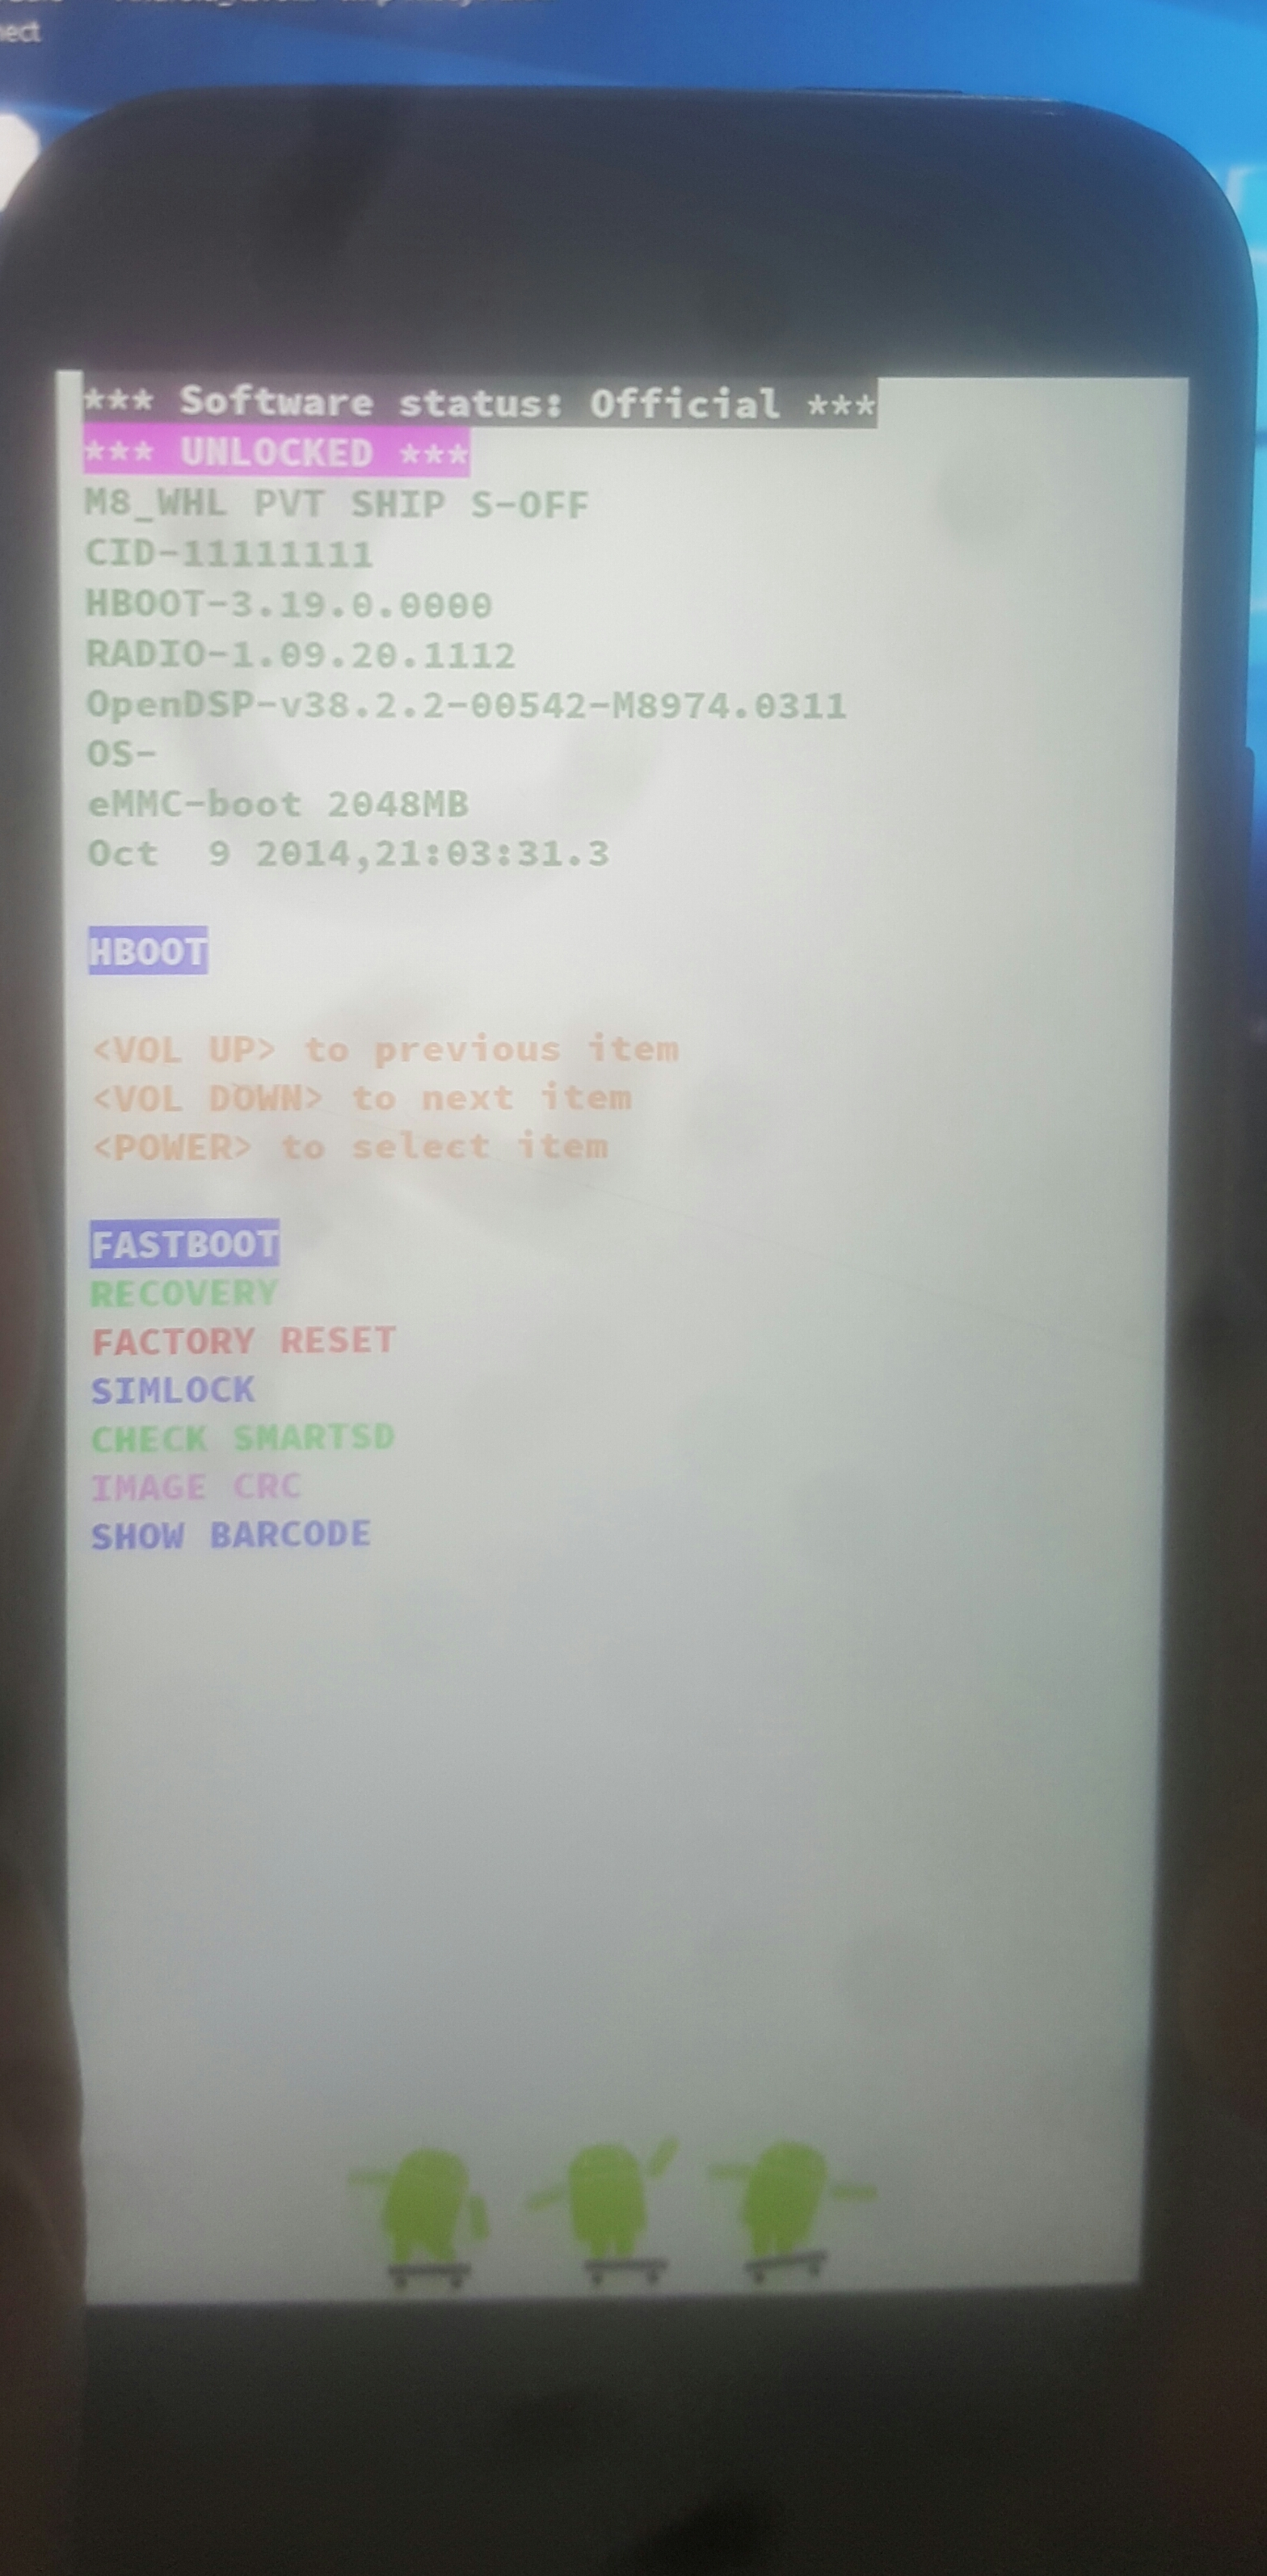 My htc m8 keeps booting into fastboot - Phones and Tablets